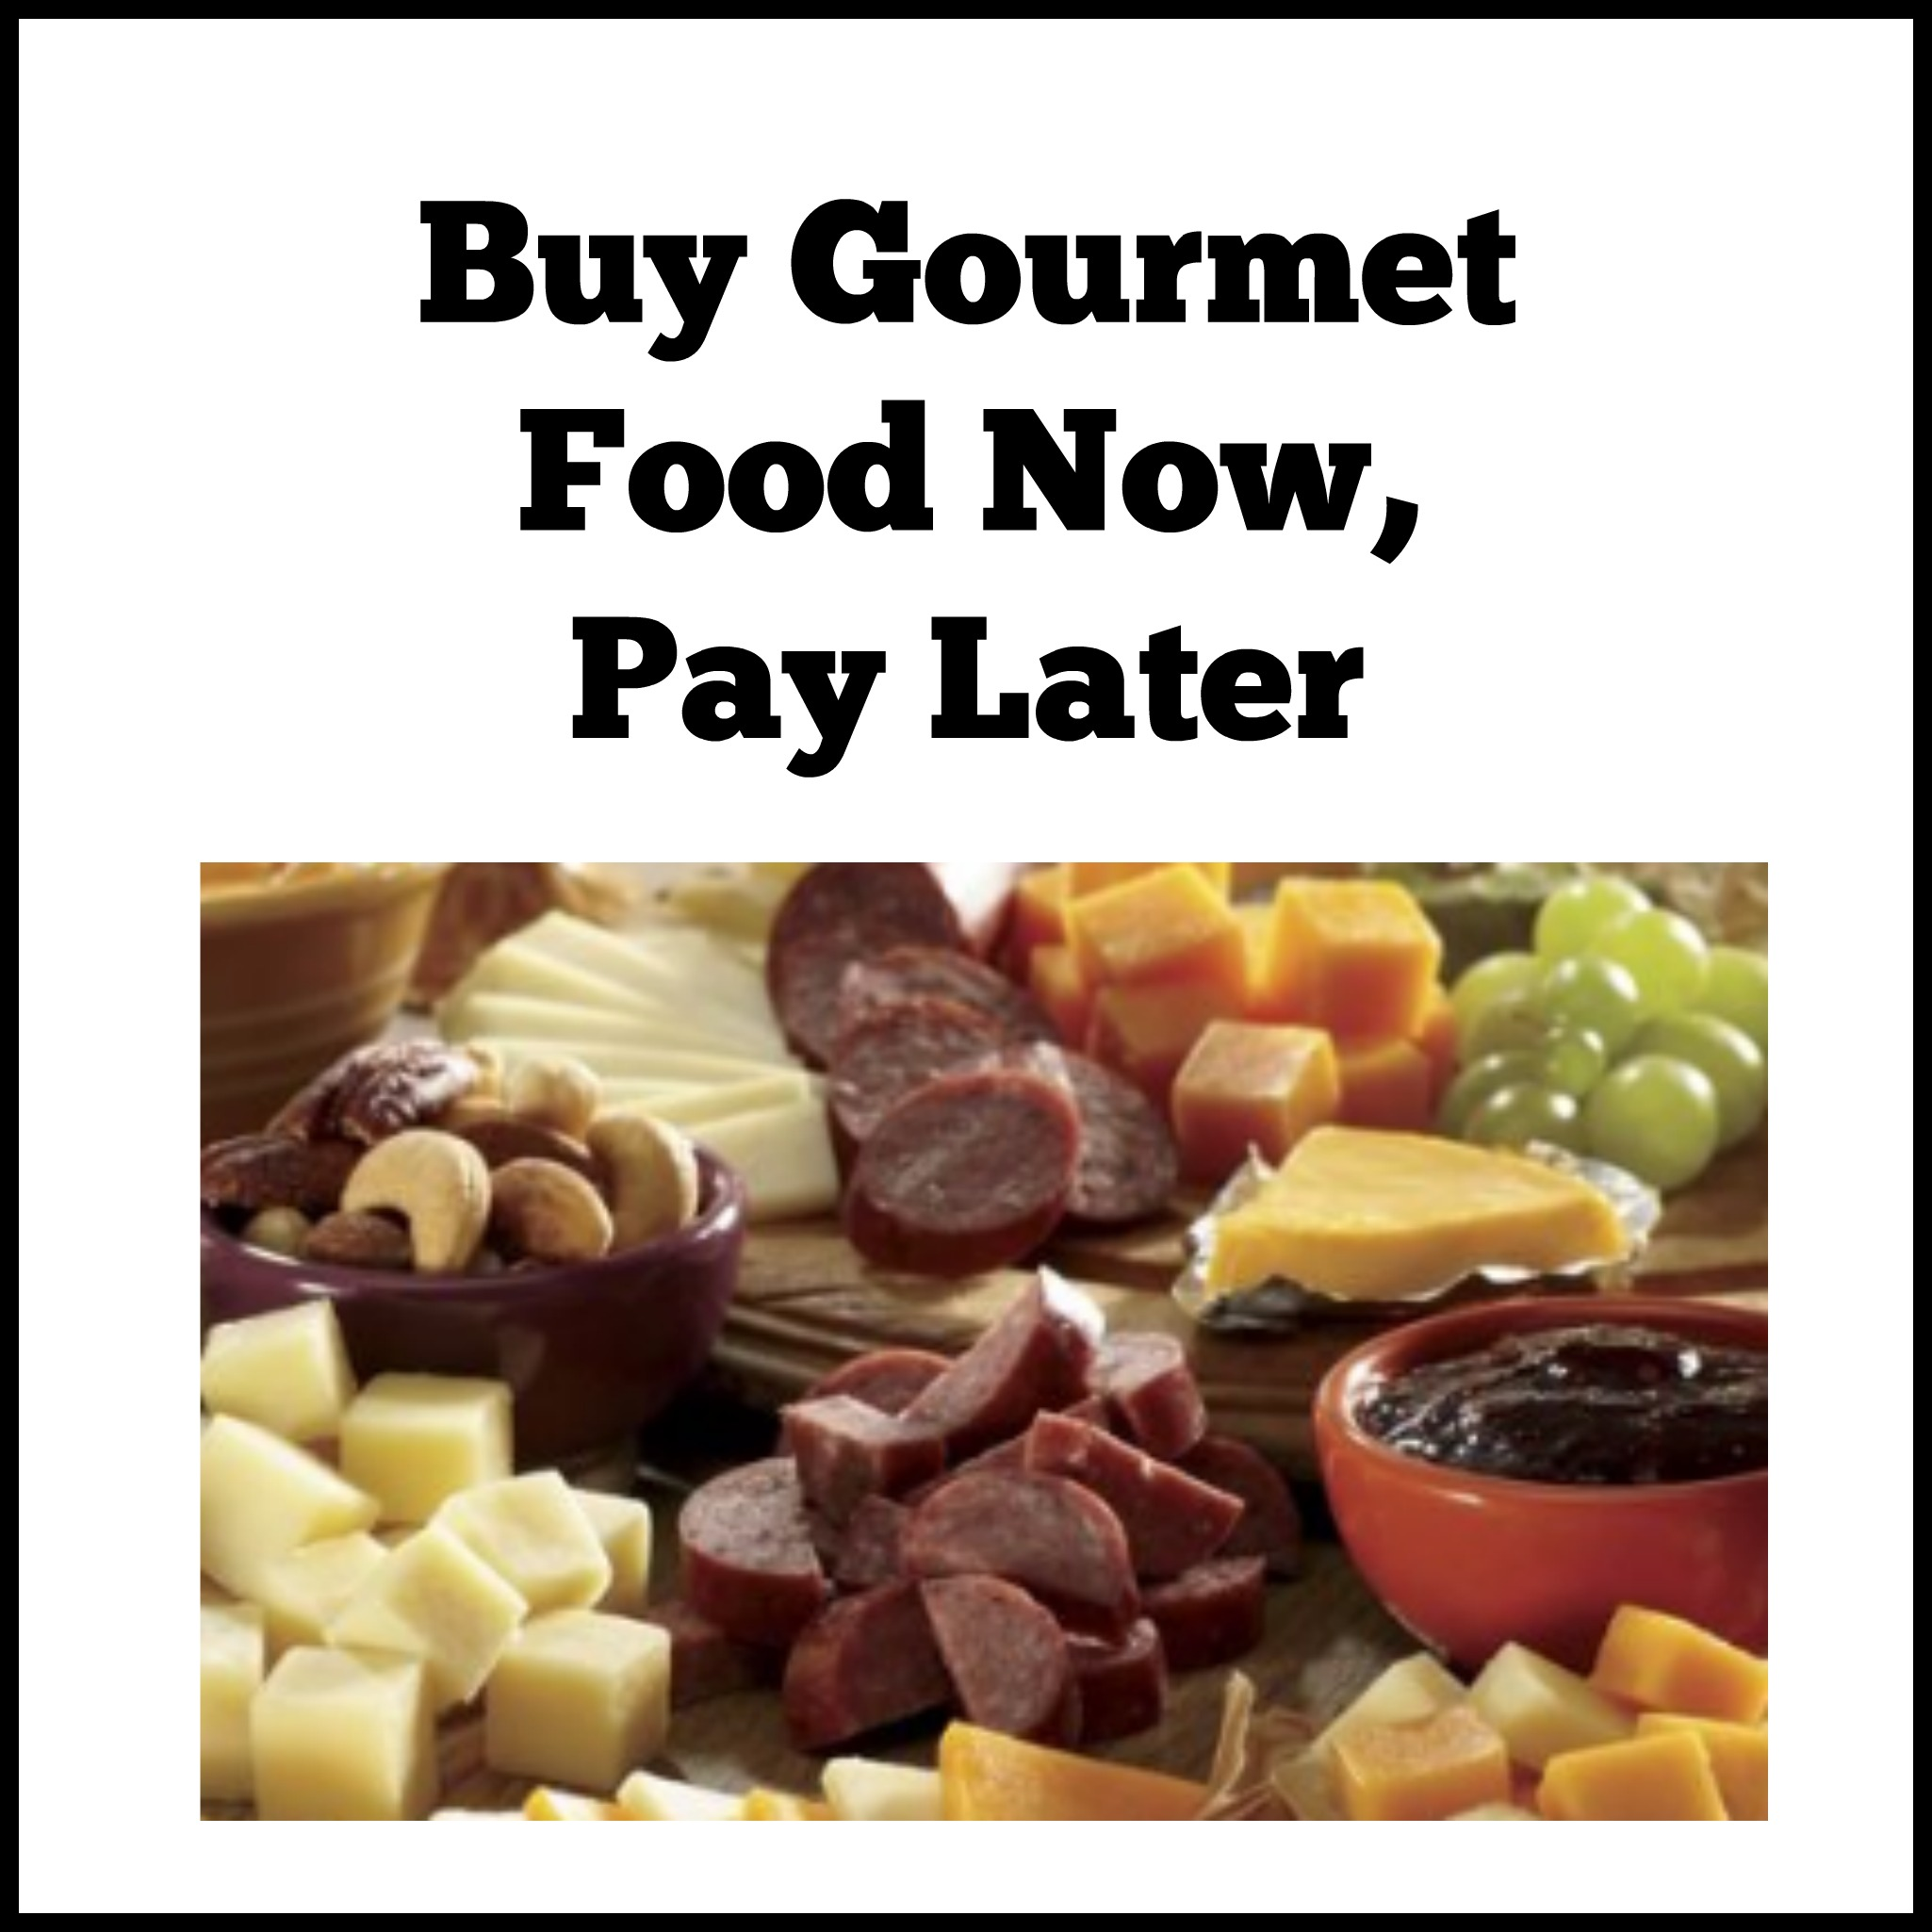 Buy Gourmet Food Now, Pay Later With Stores That Offer Payment Plans